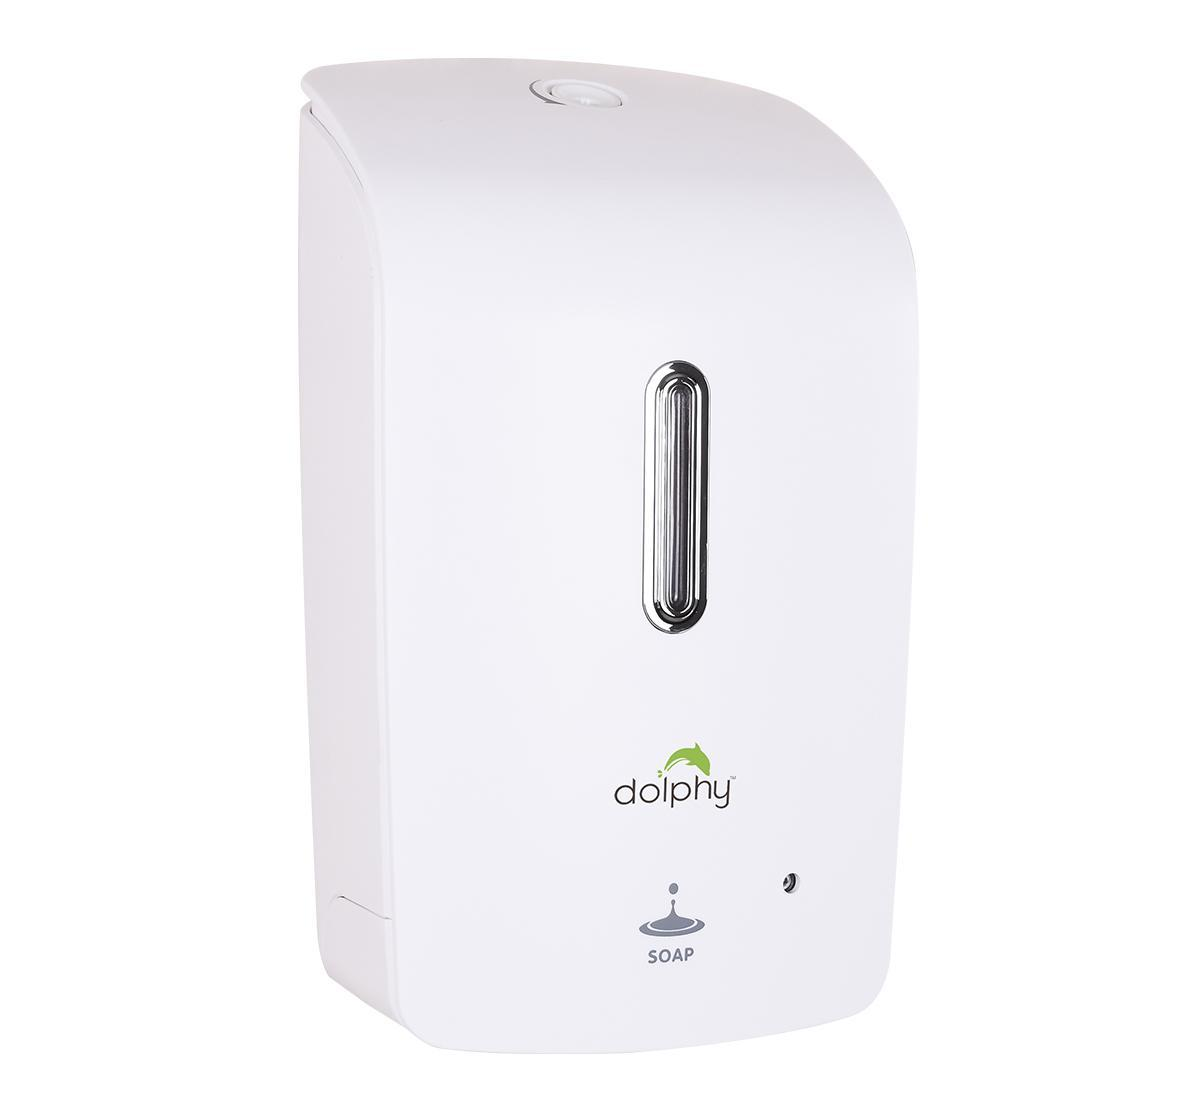 Dolphy Automatic Soap Dispenser